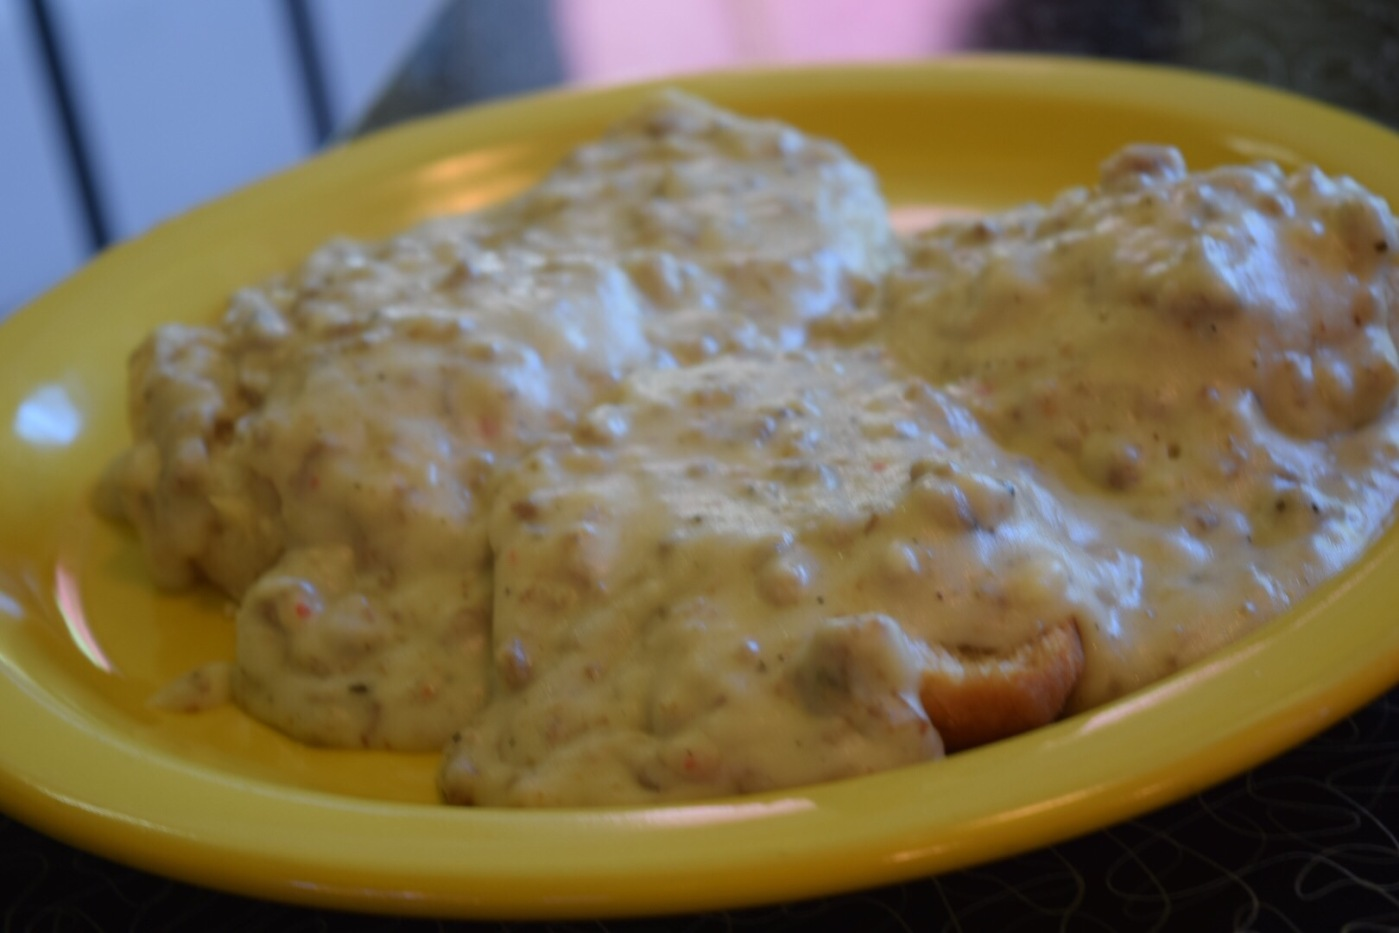 Boomers (Biscuits and Gravy)